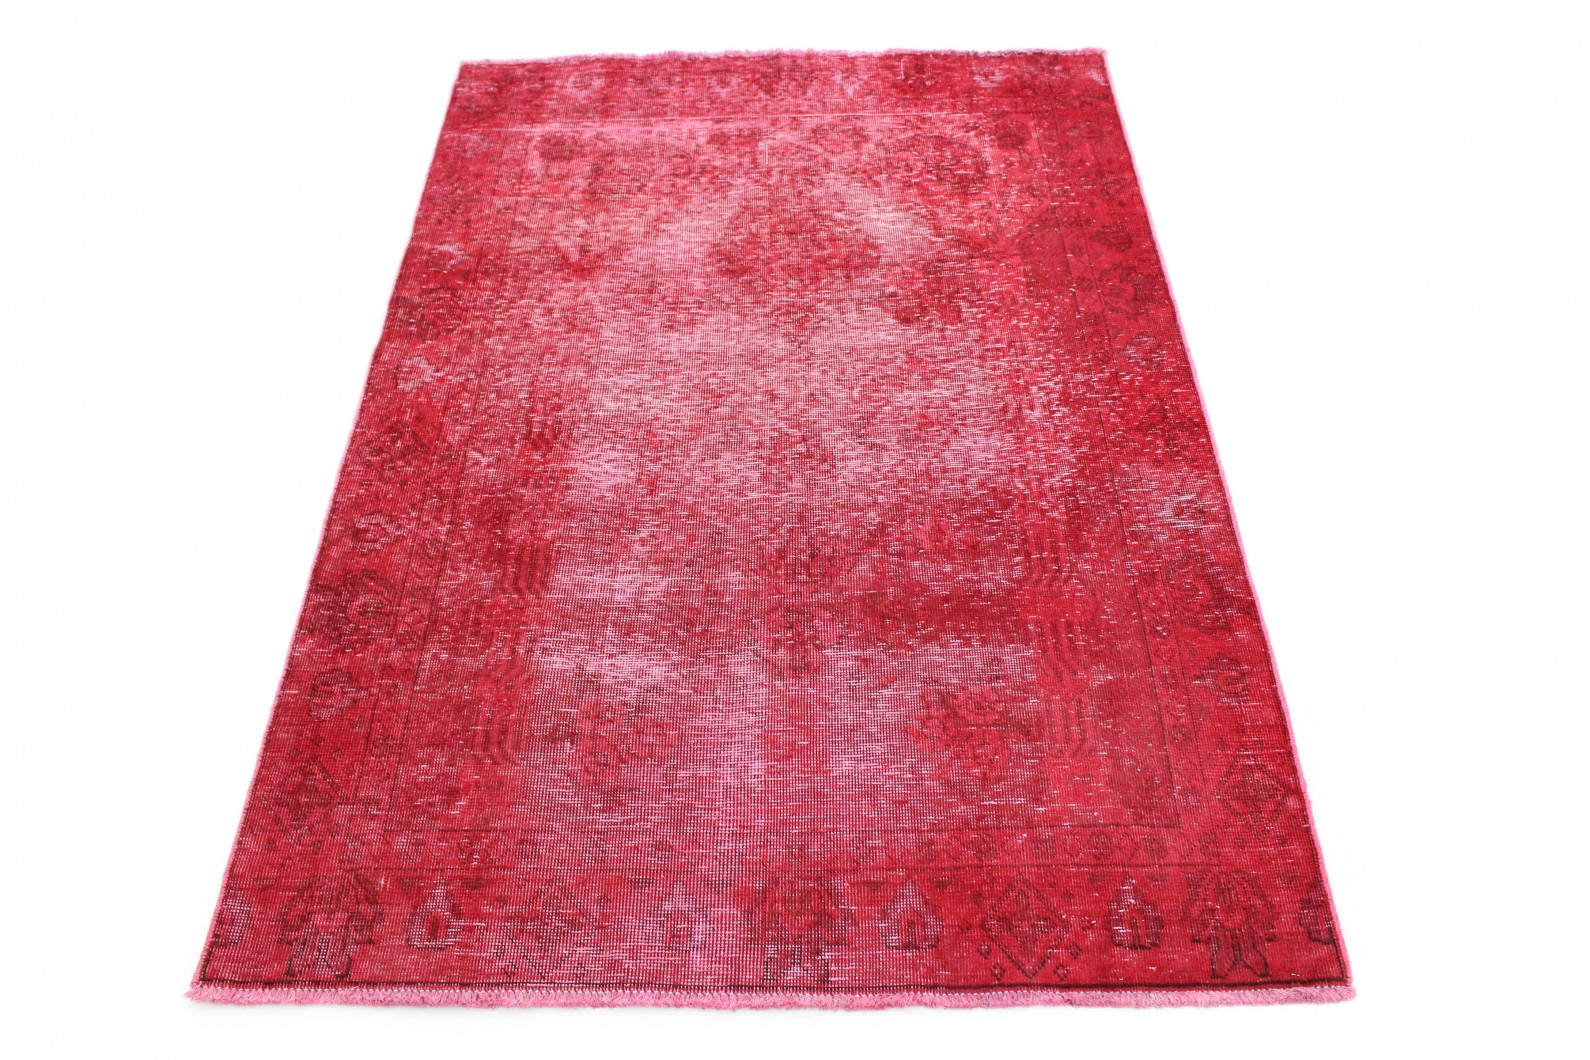 Vintage Teppich Rot in 180x130 (1 / 4)